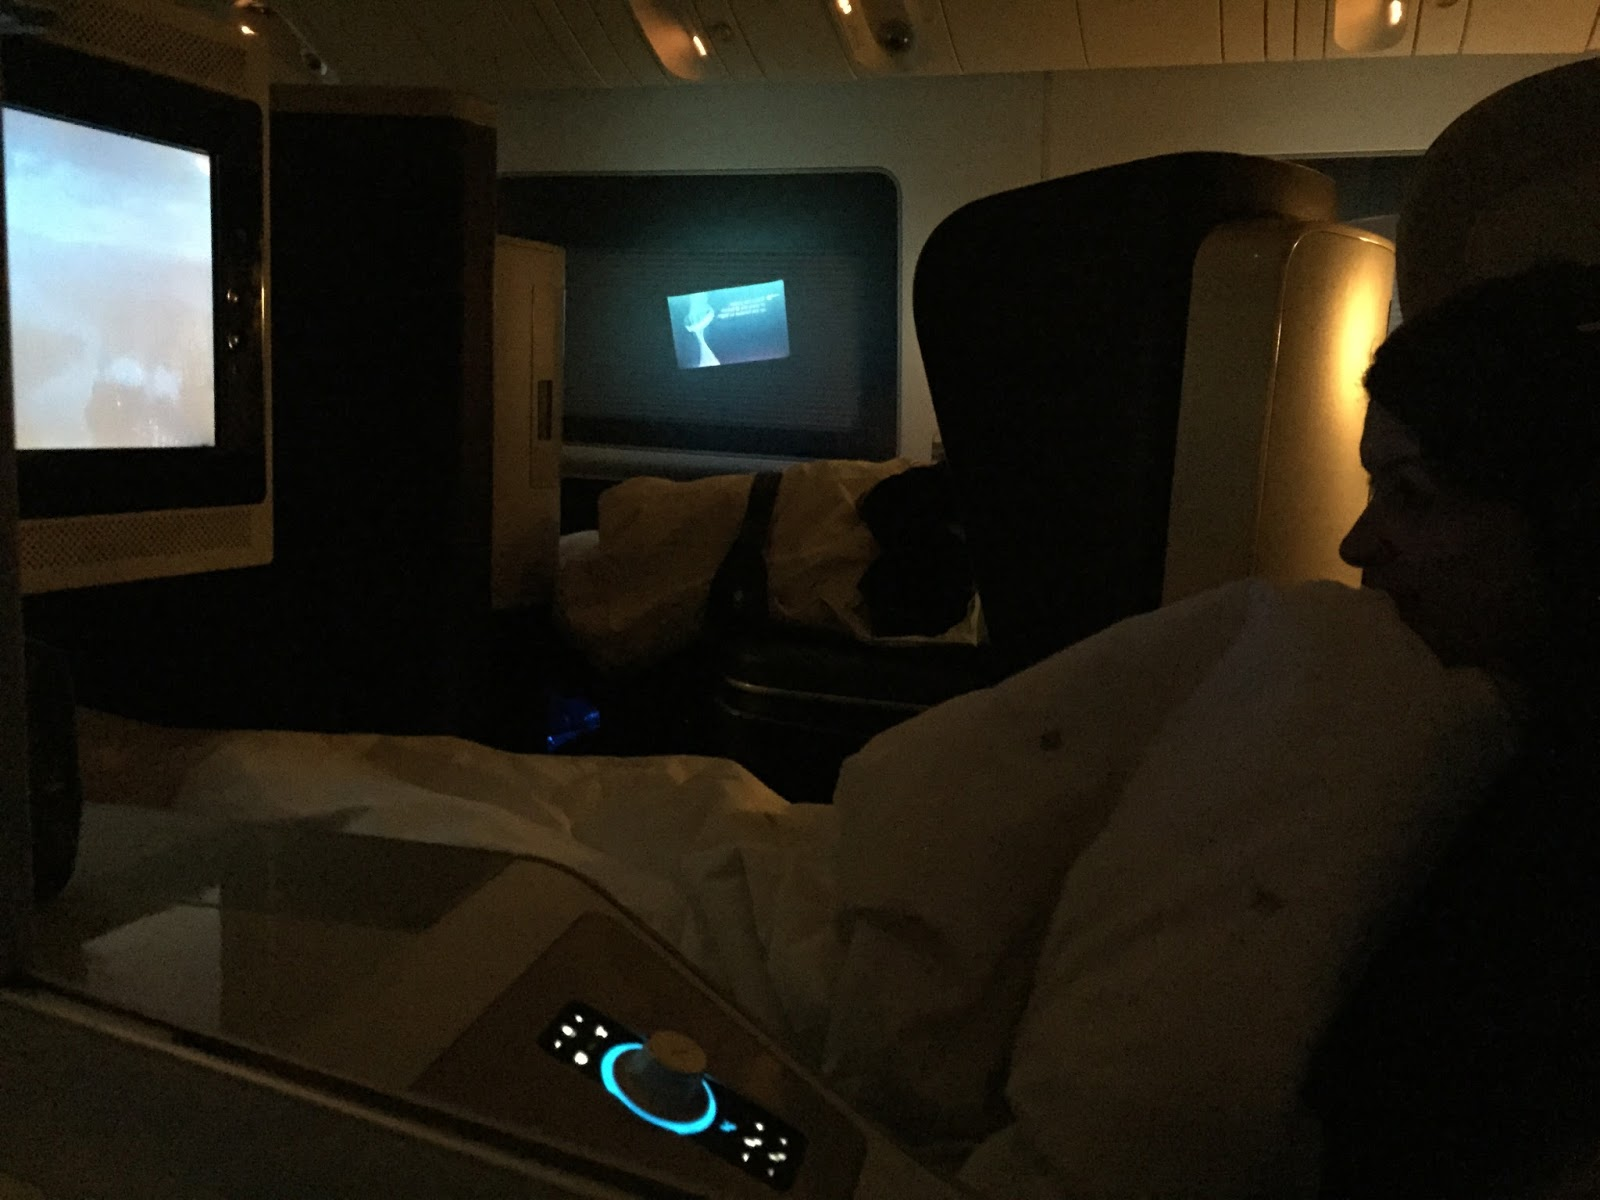 BA First Class seat and screen